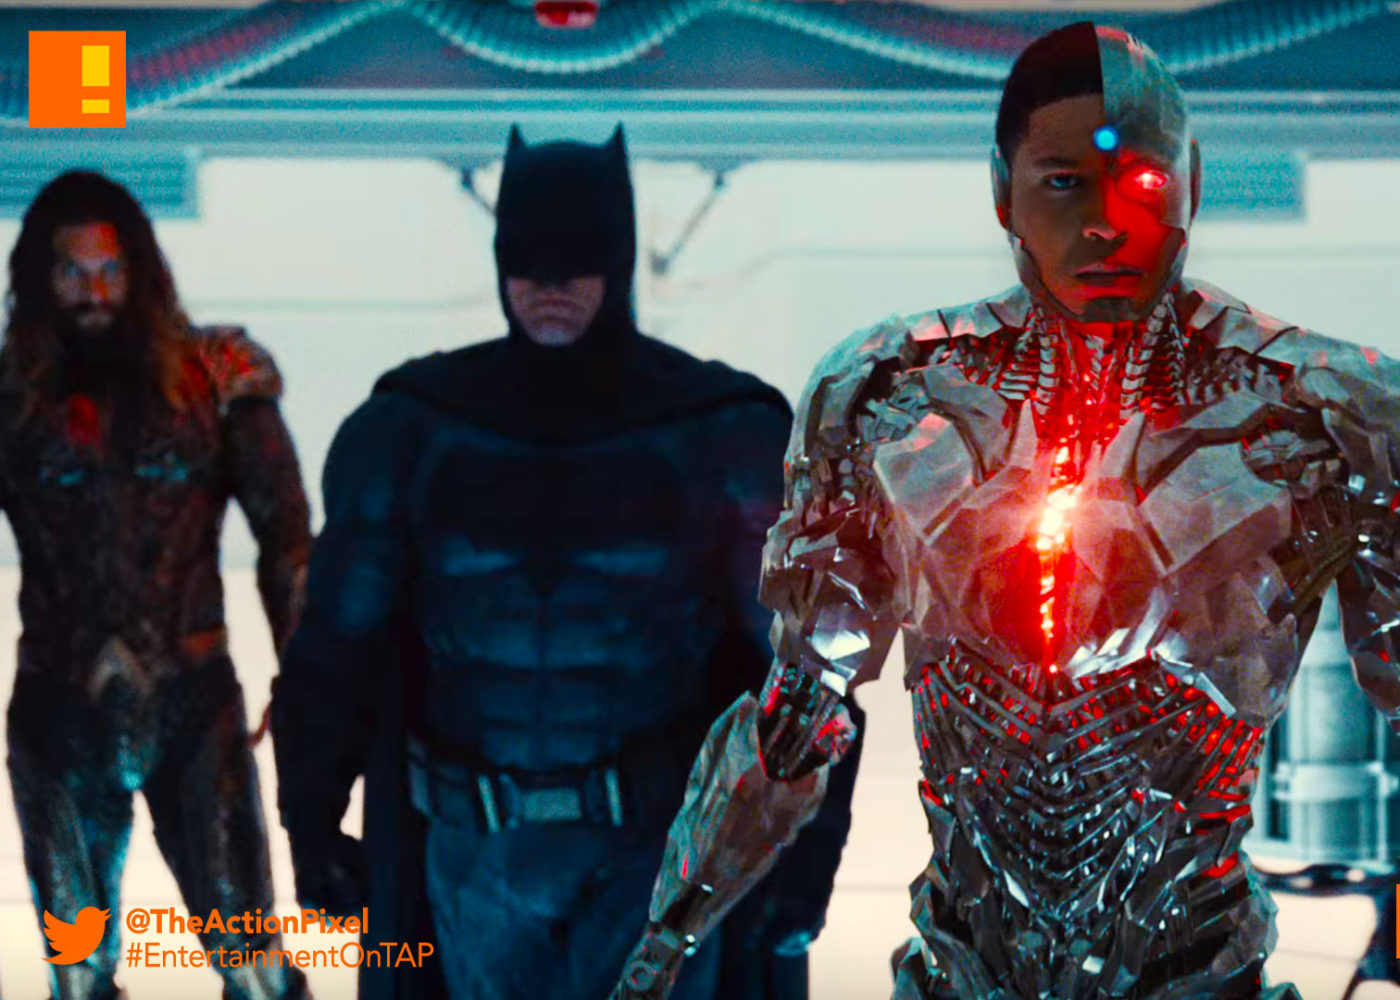 unite the league,JL, justice league, dc comics ,batman, superman, wonder woman, princess diana, diana prince, bruce wayne, ben affleck, batfleck, batffleck, gal gadot, cyborg, ray fisher, aquaman, jason momoa, arthur , flash,ezra miller, justice league movie, zack snyder, poster, wb pictures, warner bros. pictures, warner bros, the action pixel, entertainment on tap,teaser, poster, all in, november 17,teaser